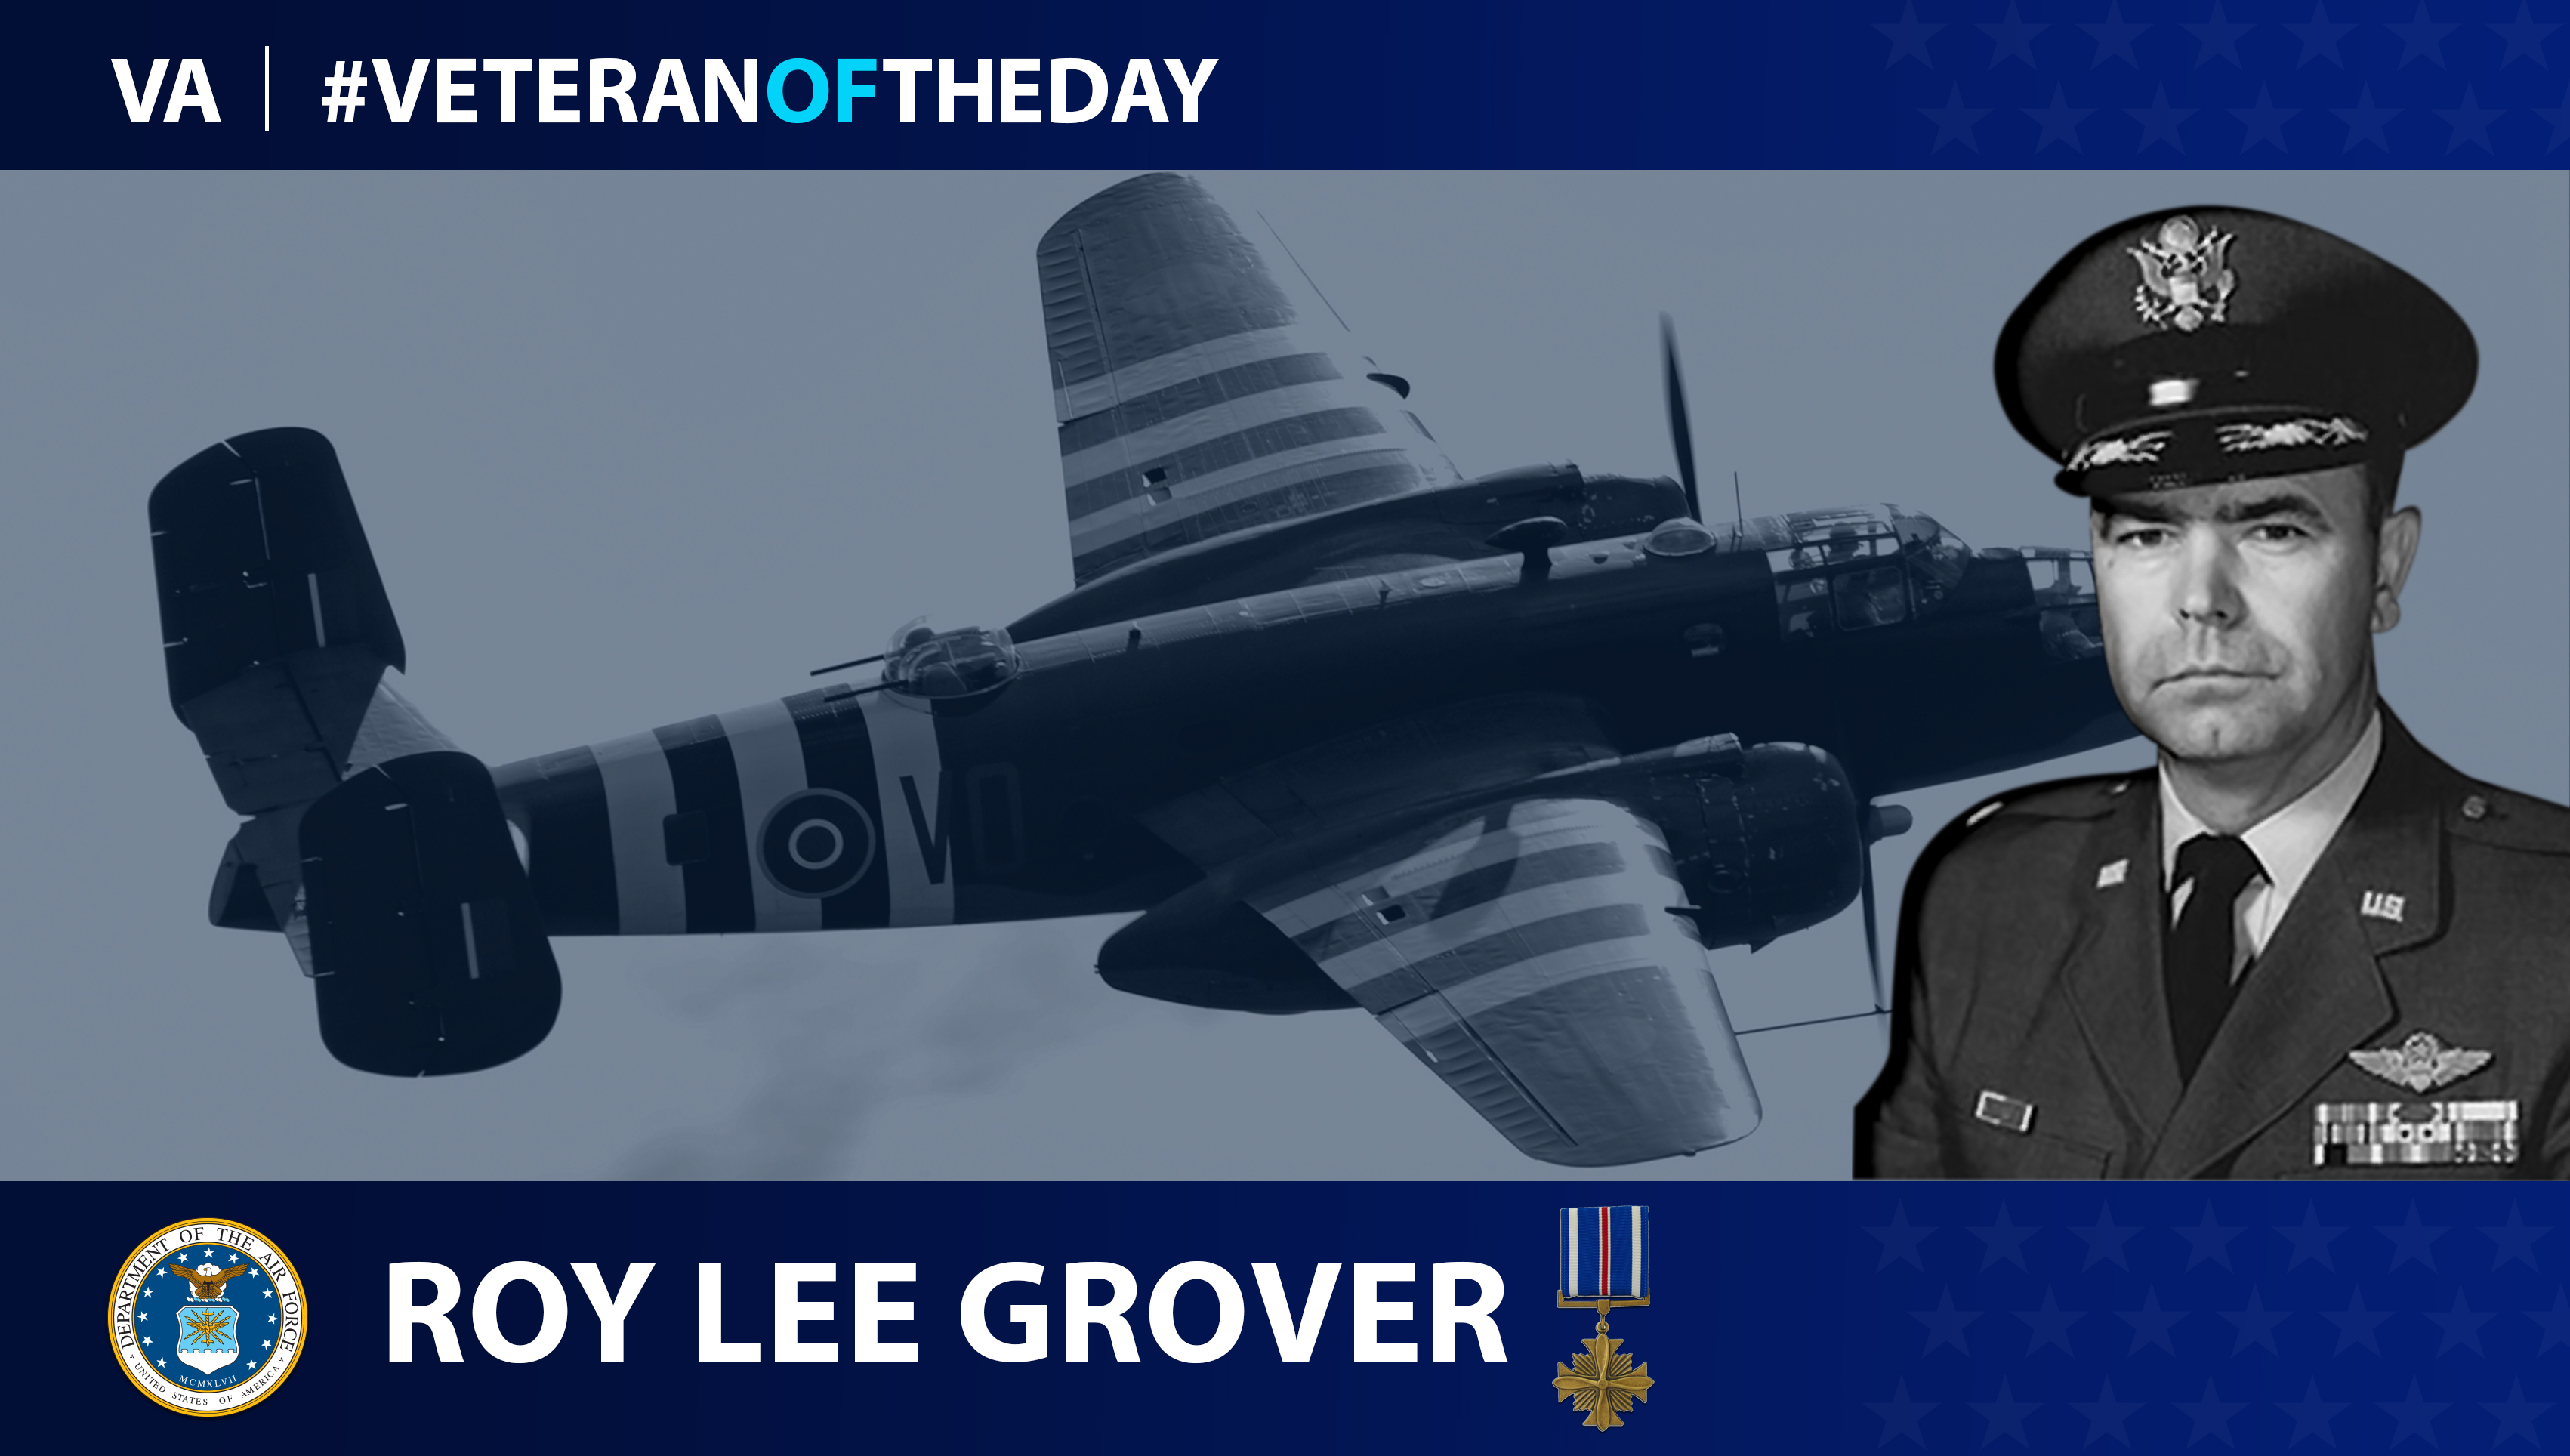 Air Force Veteran Roy Lee Grover is today's Veteran of the Day.